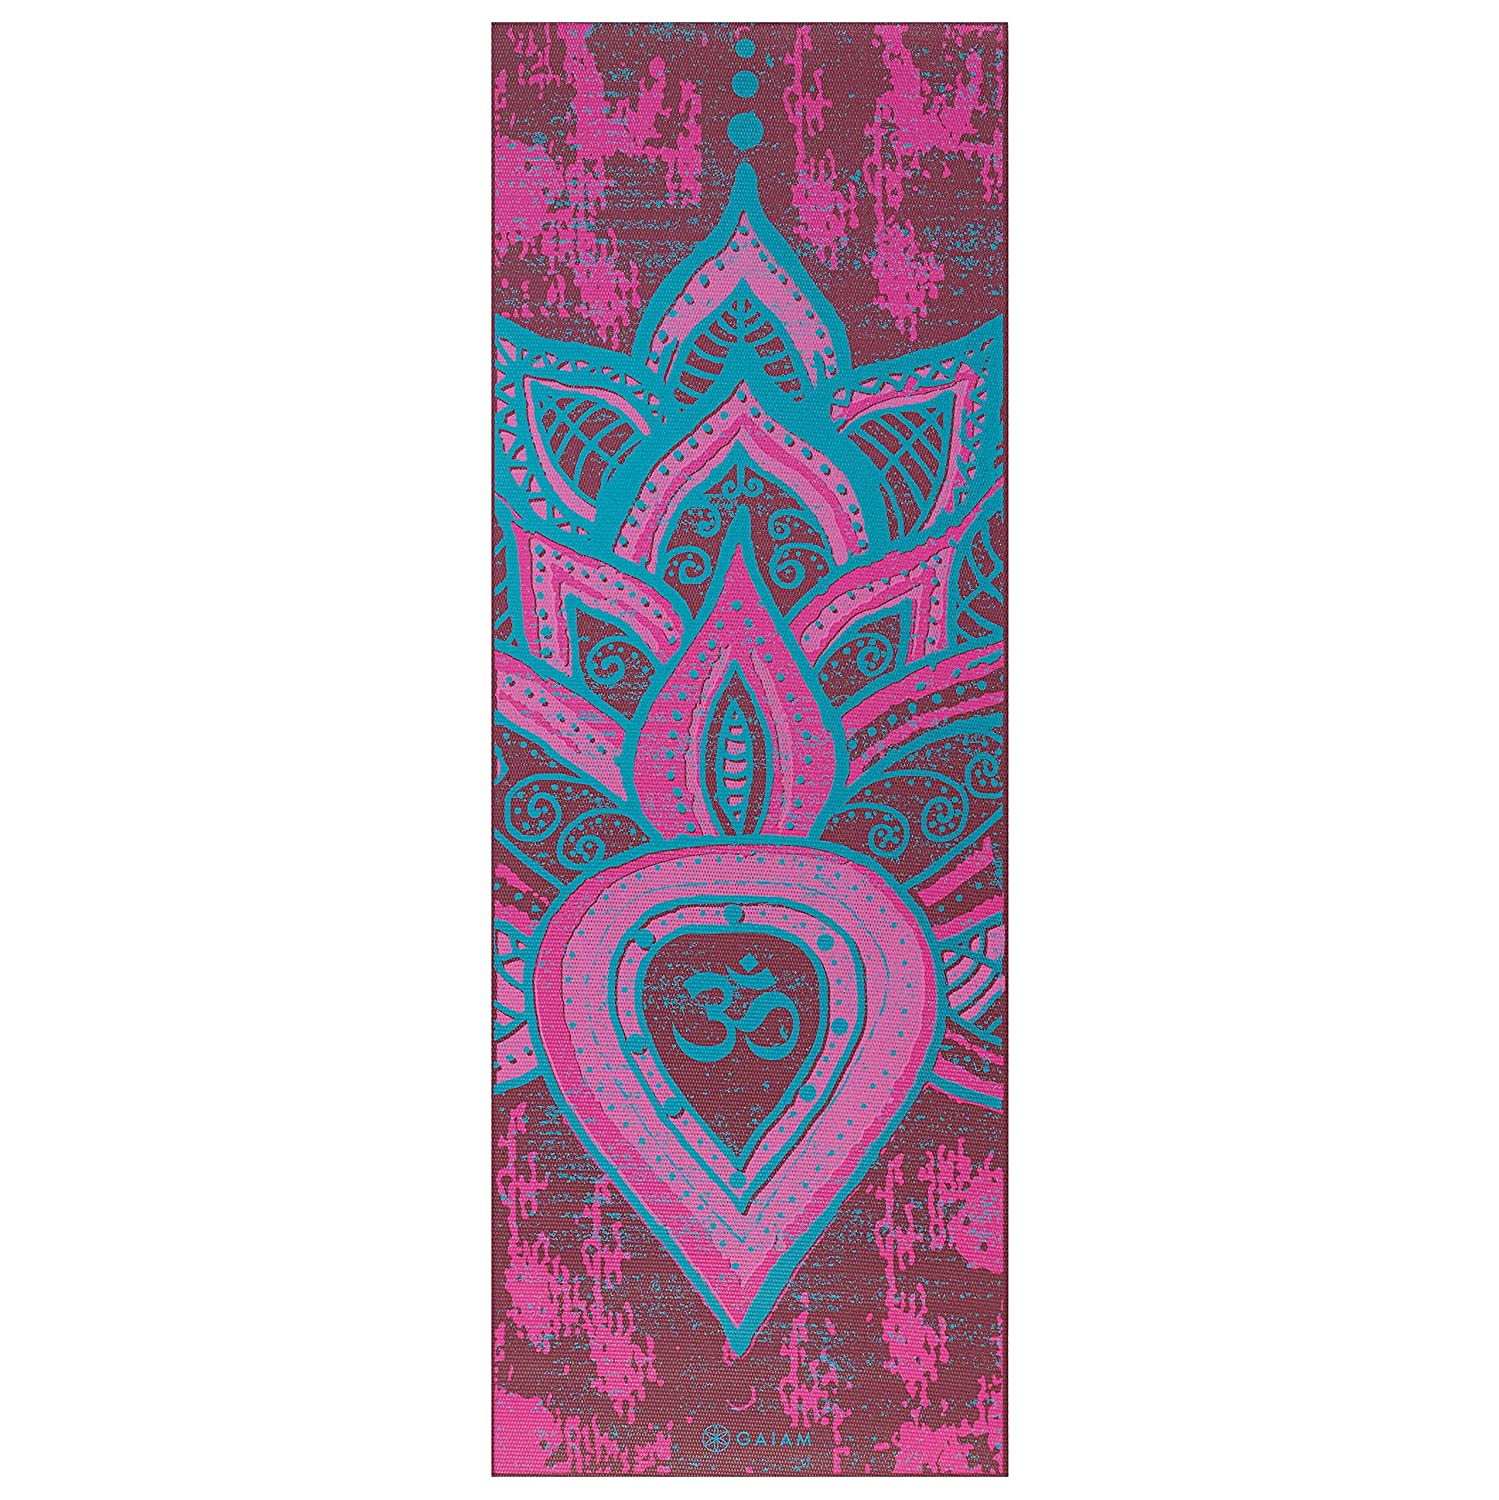 Gaiam Print Premium Reversible Quot Be Free Quot Yoga Mat 5mm